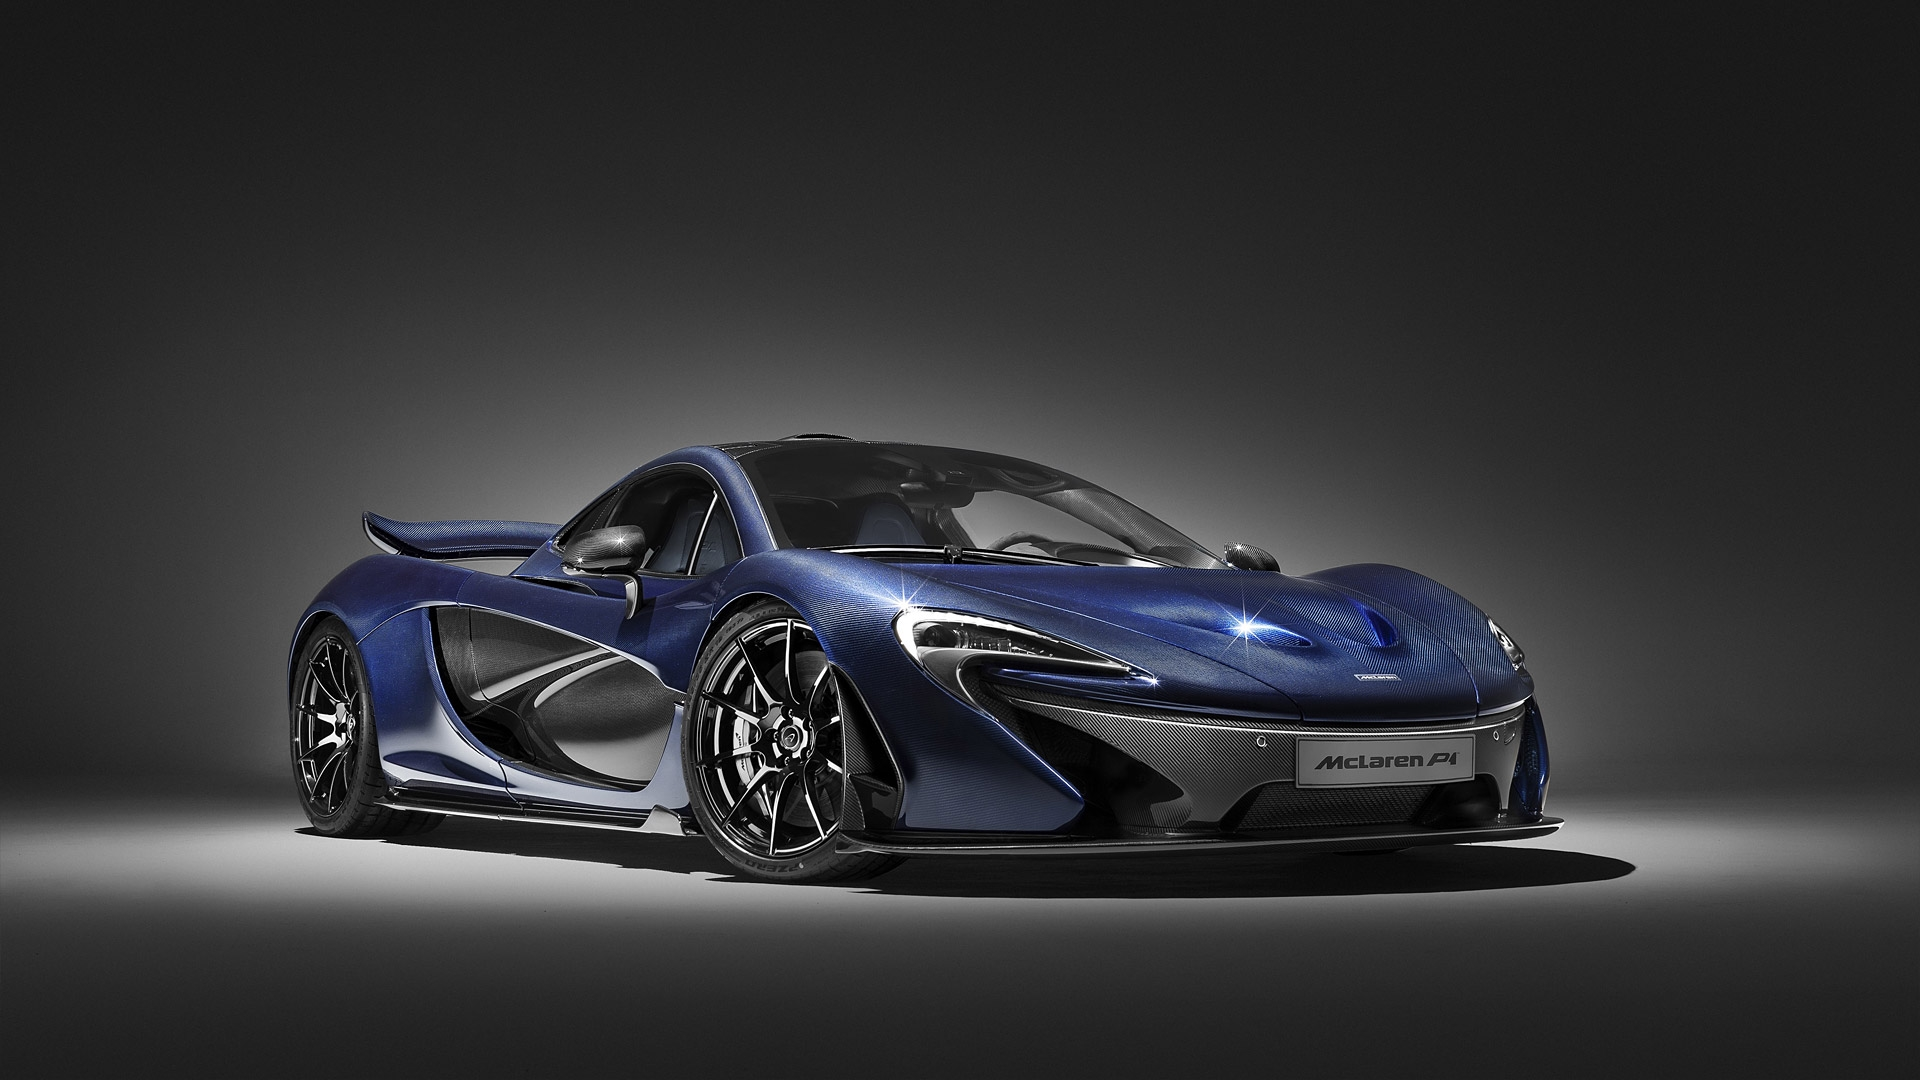 Mclaren P1 Bleu Photo Fond Ecran Hd